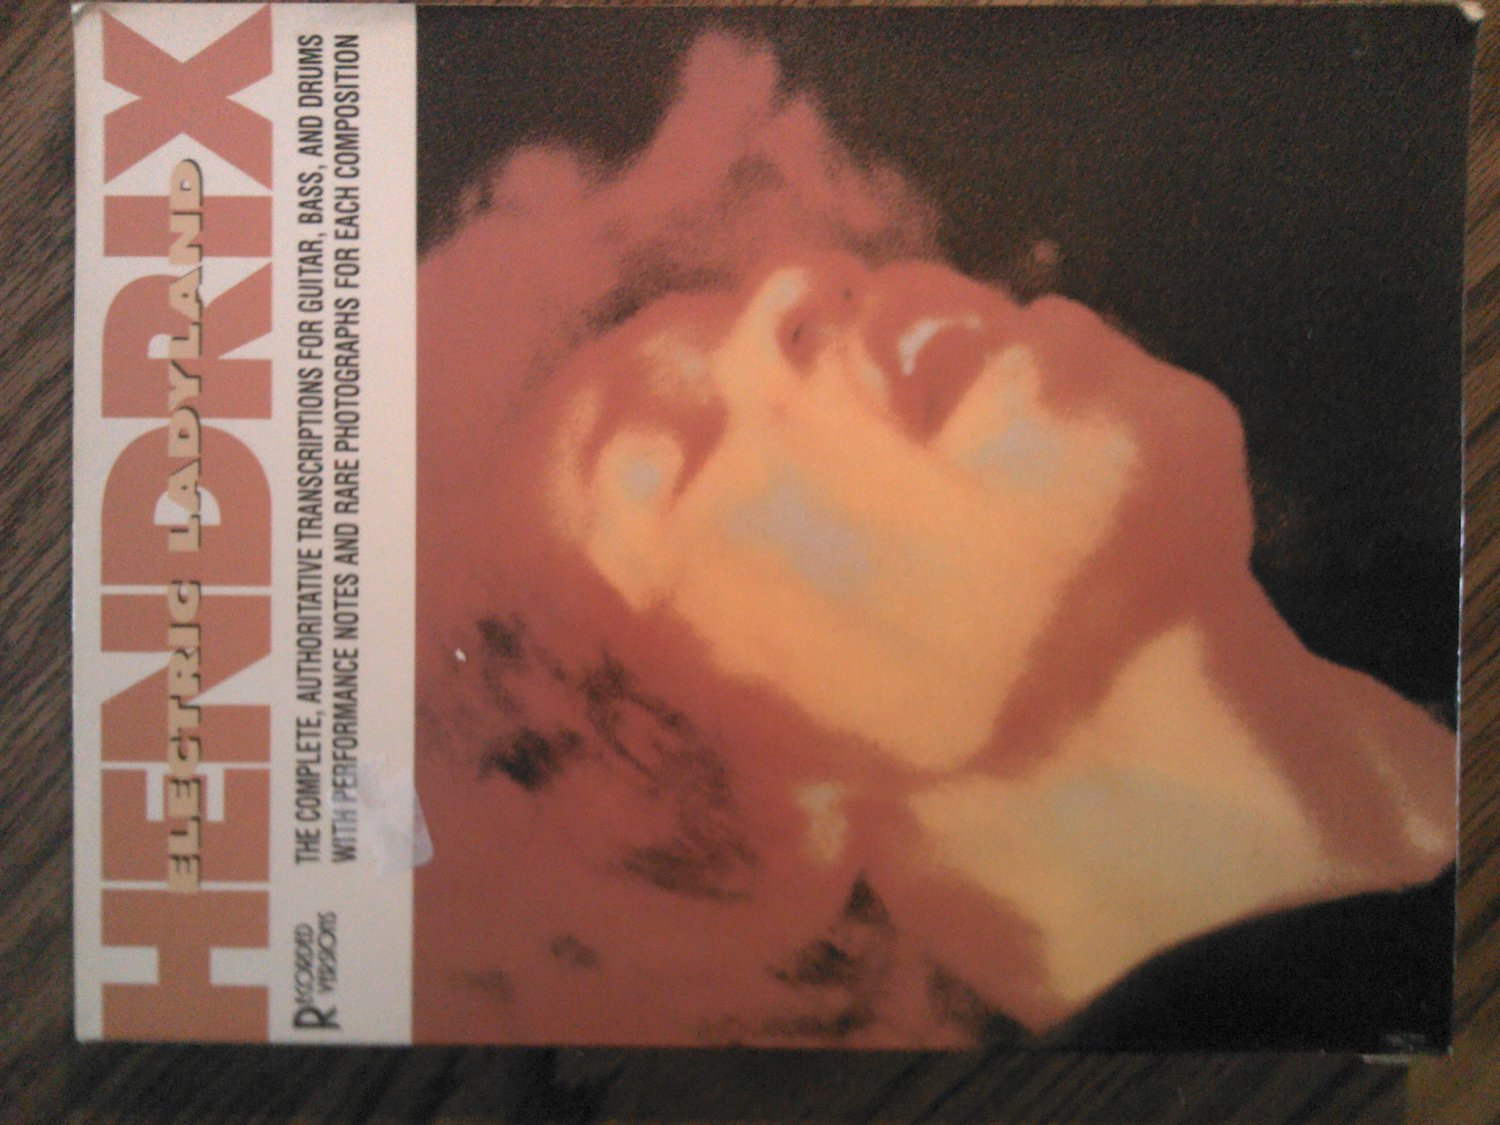 JIMI HENDRIX SONGBOOK Electric Ladyland guitar bass drum tablature song book TAB